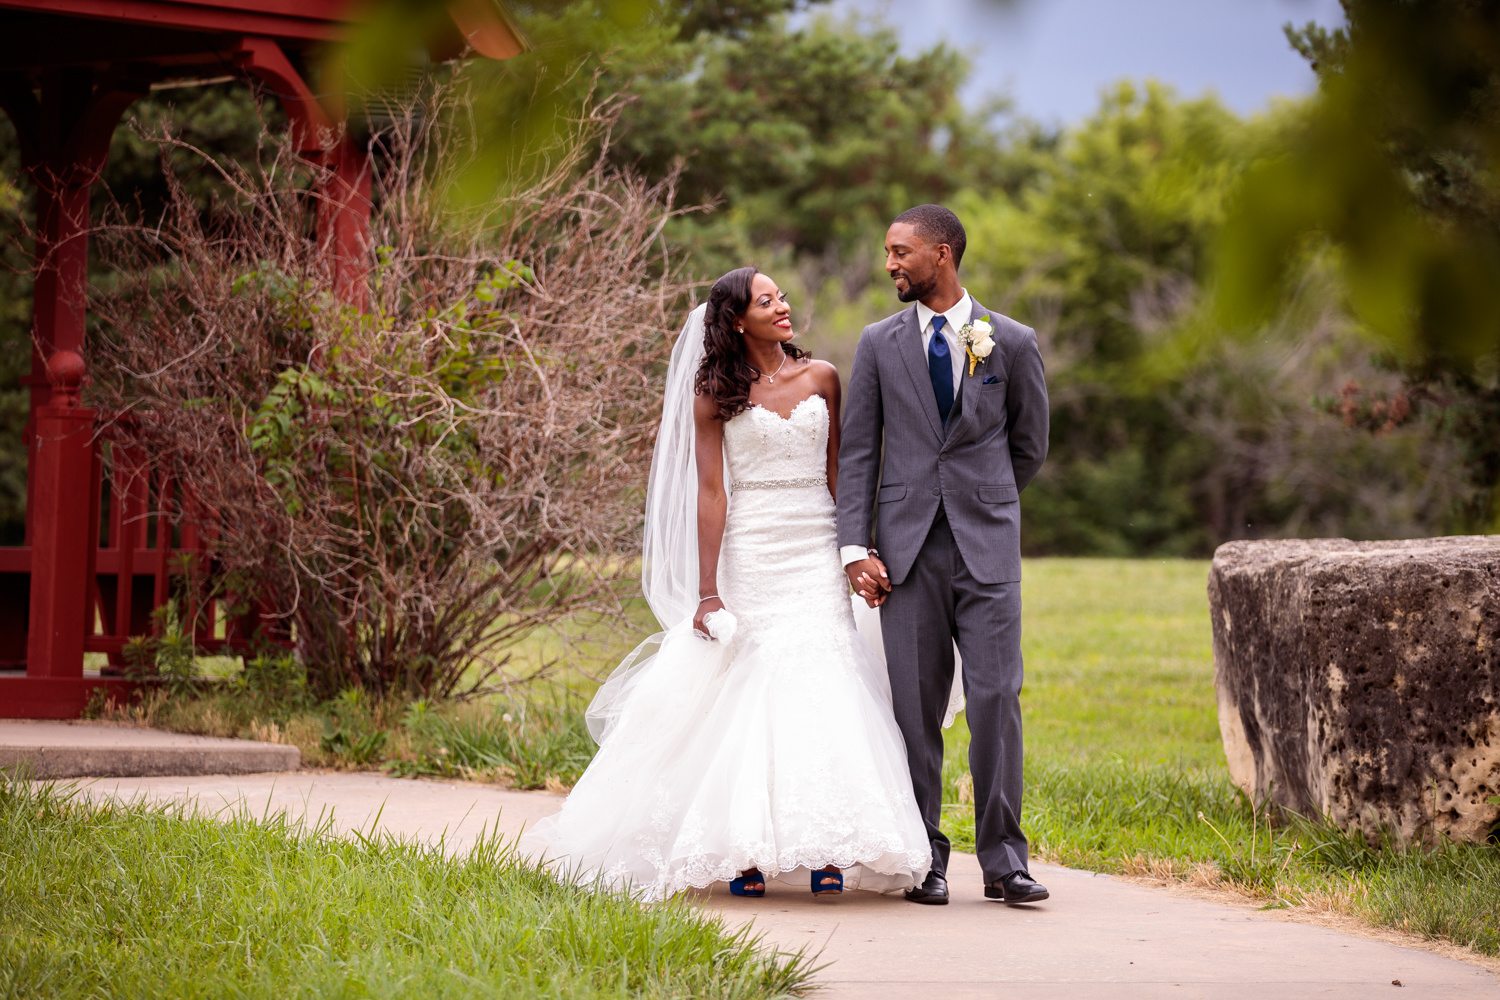 The Complete Guide to Wedding Photography Pricing: Part 1